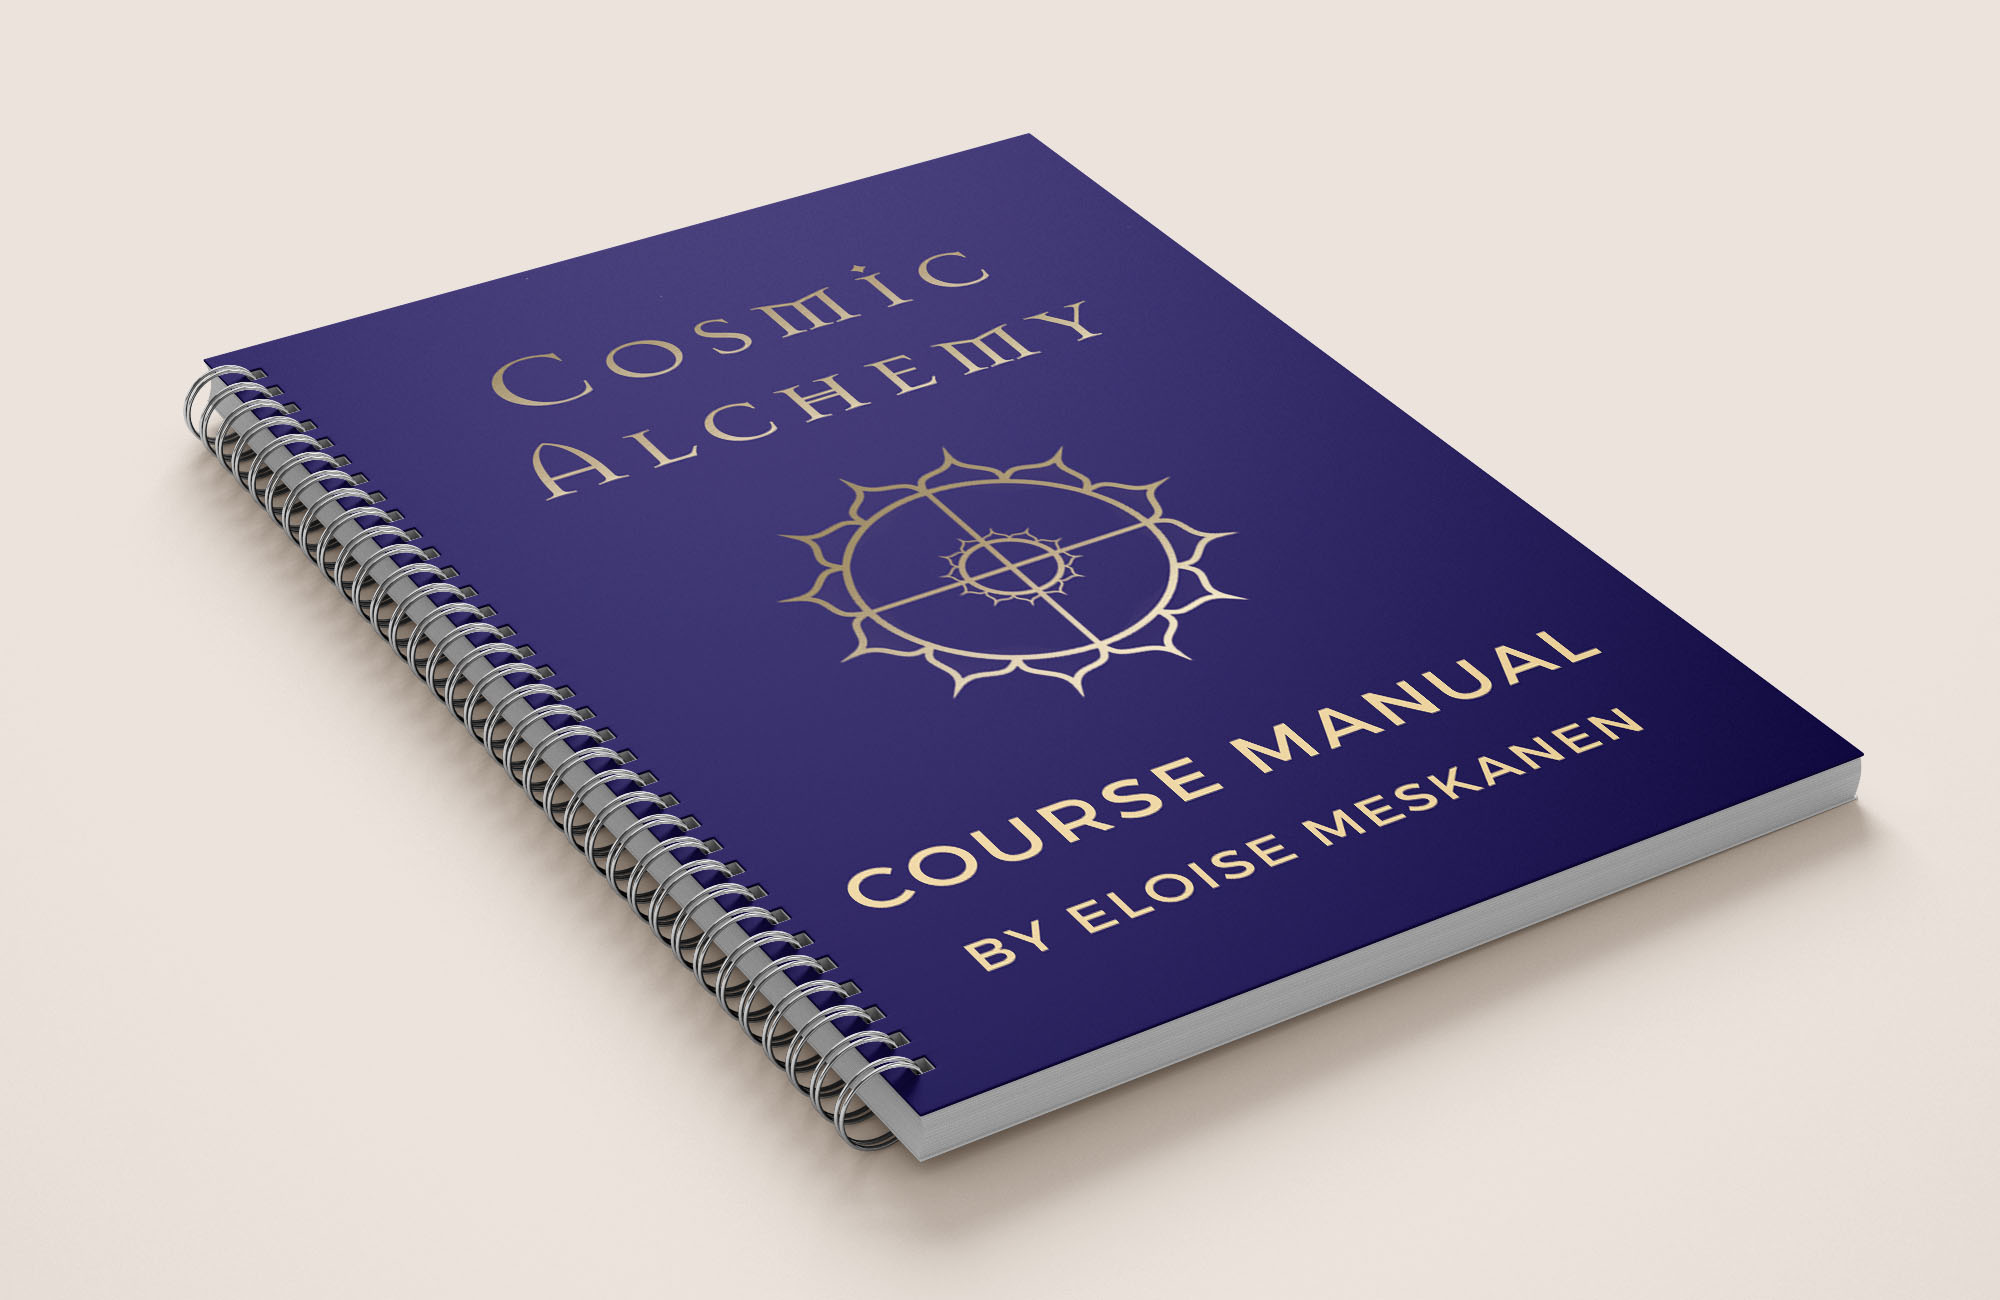 PROFESSIONALLY PRINTED AND BOUND WORKBOOK  - A handy journal and workbook to record your insights